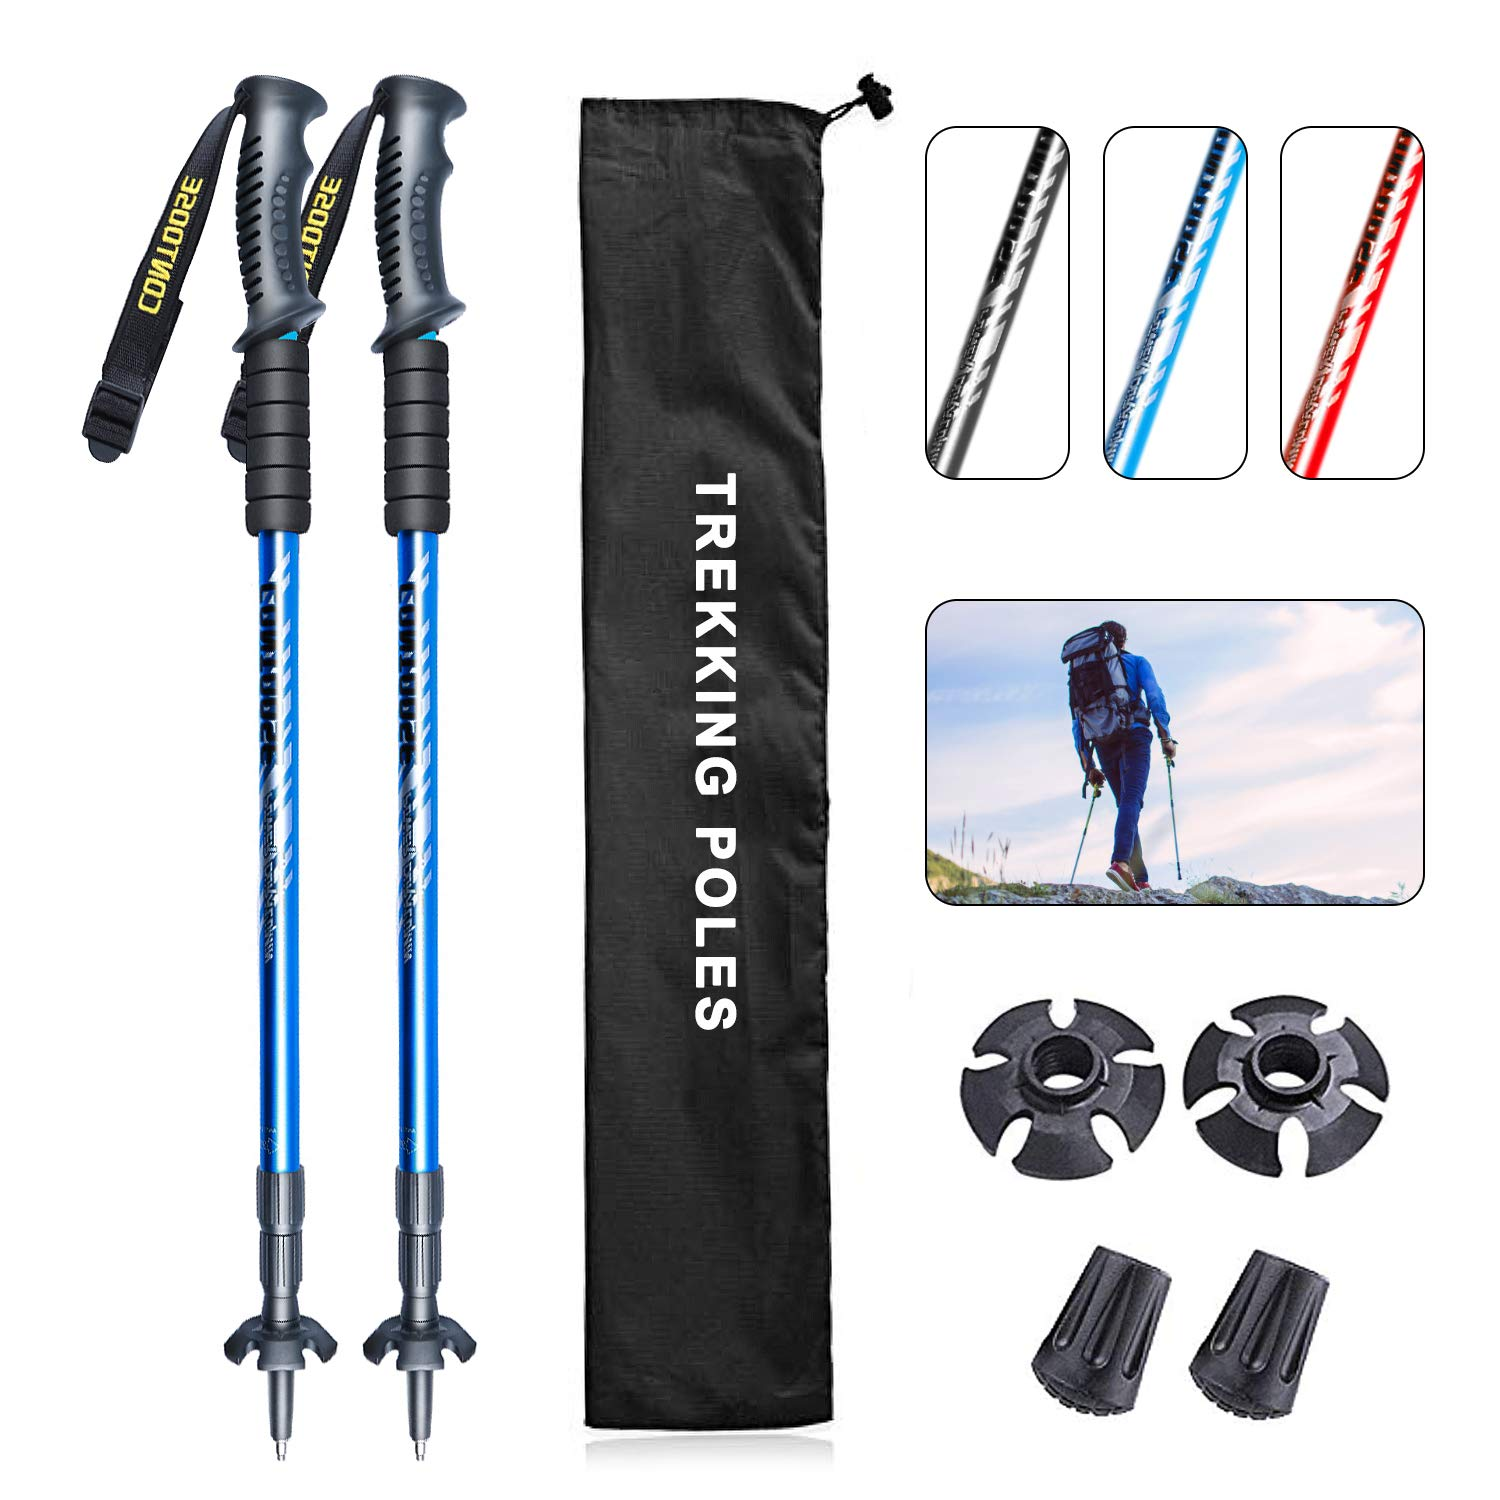 Aluminum walking poles Telescopic Trekking Poles 2 Pack Adjustable Hiking Walking Stick Quick Lock Shock-Absorbent Ultralight for Camping Mountaineering Backpacking 4 Season All Terrain Accessory